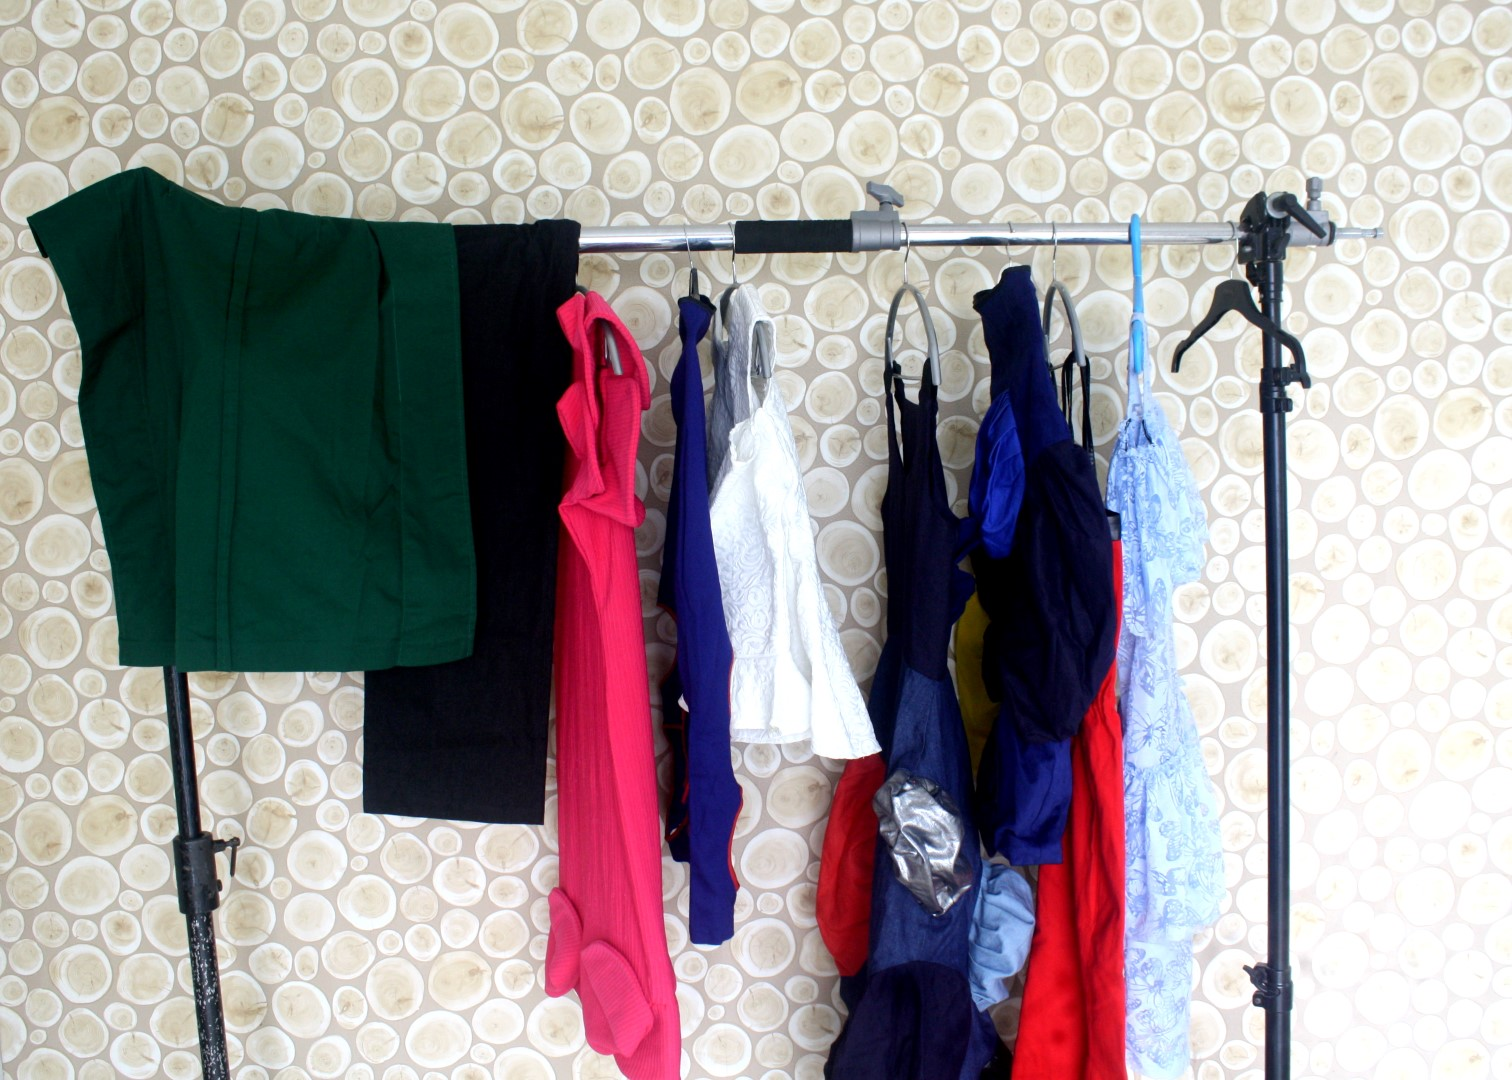 A rack of clothes behind the scene of cassie daves mania magazine shoot.